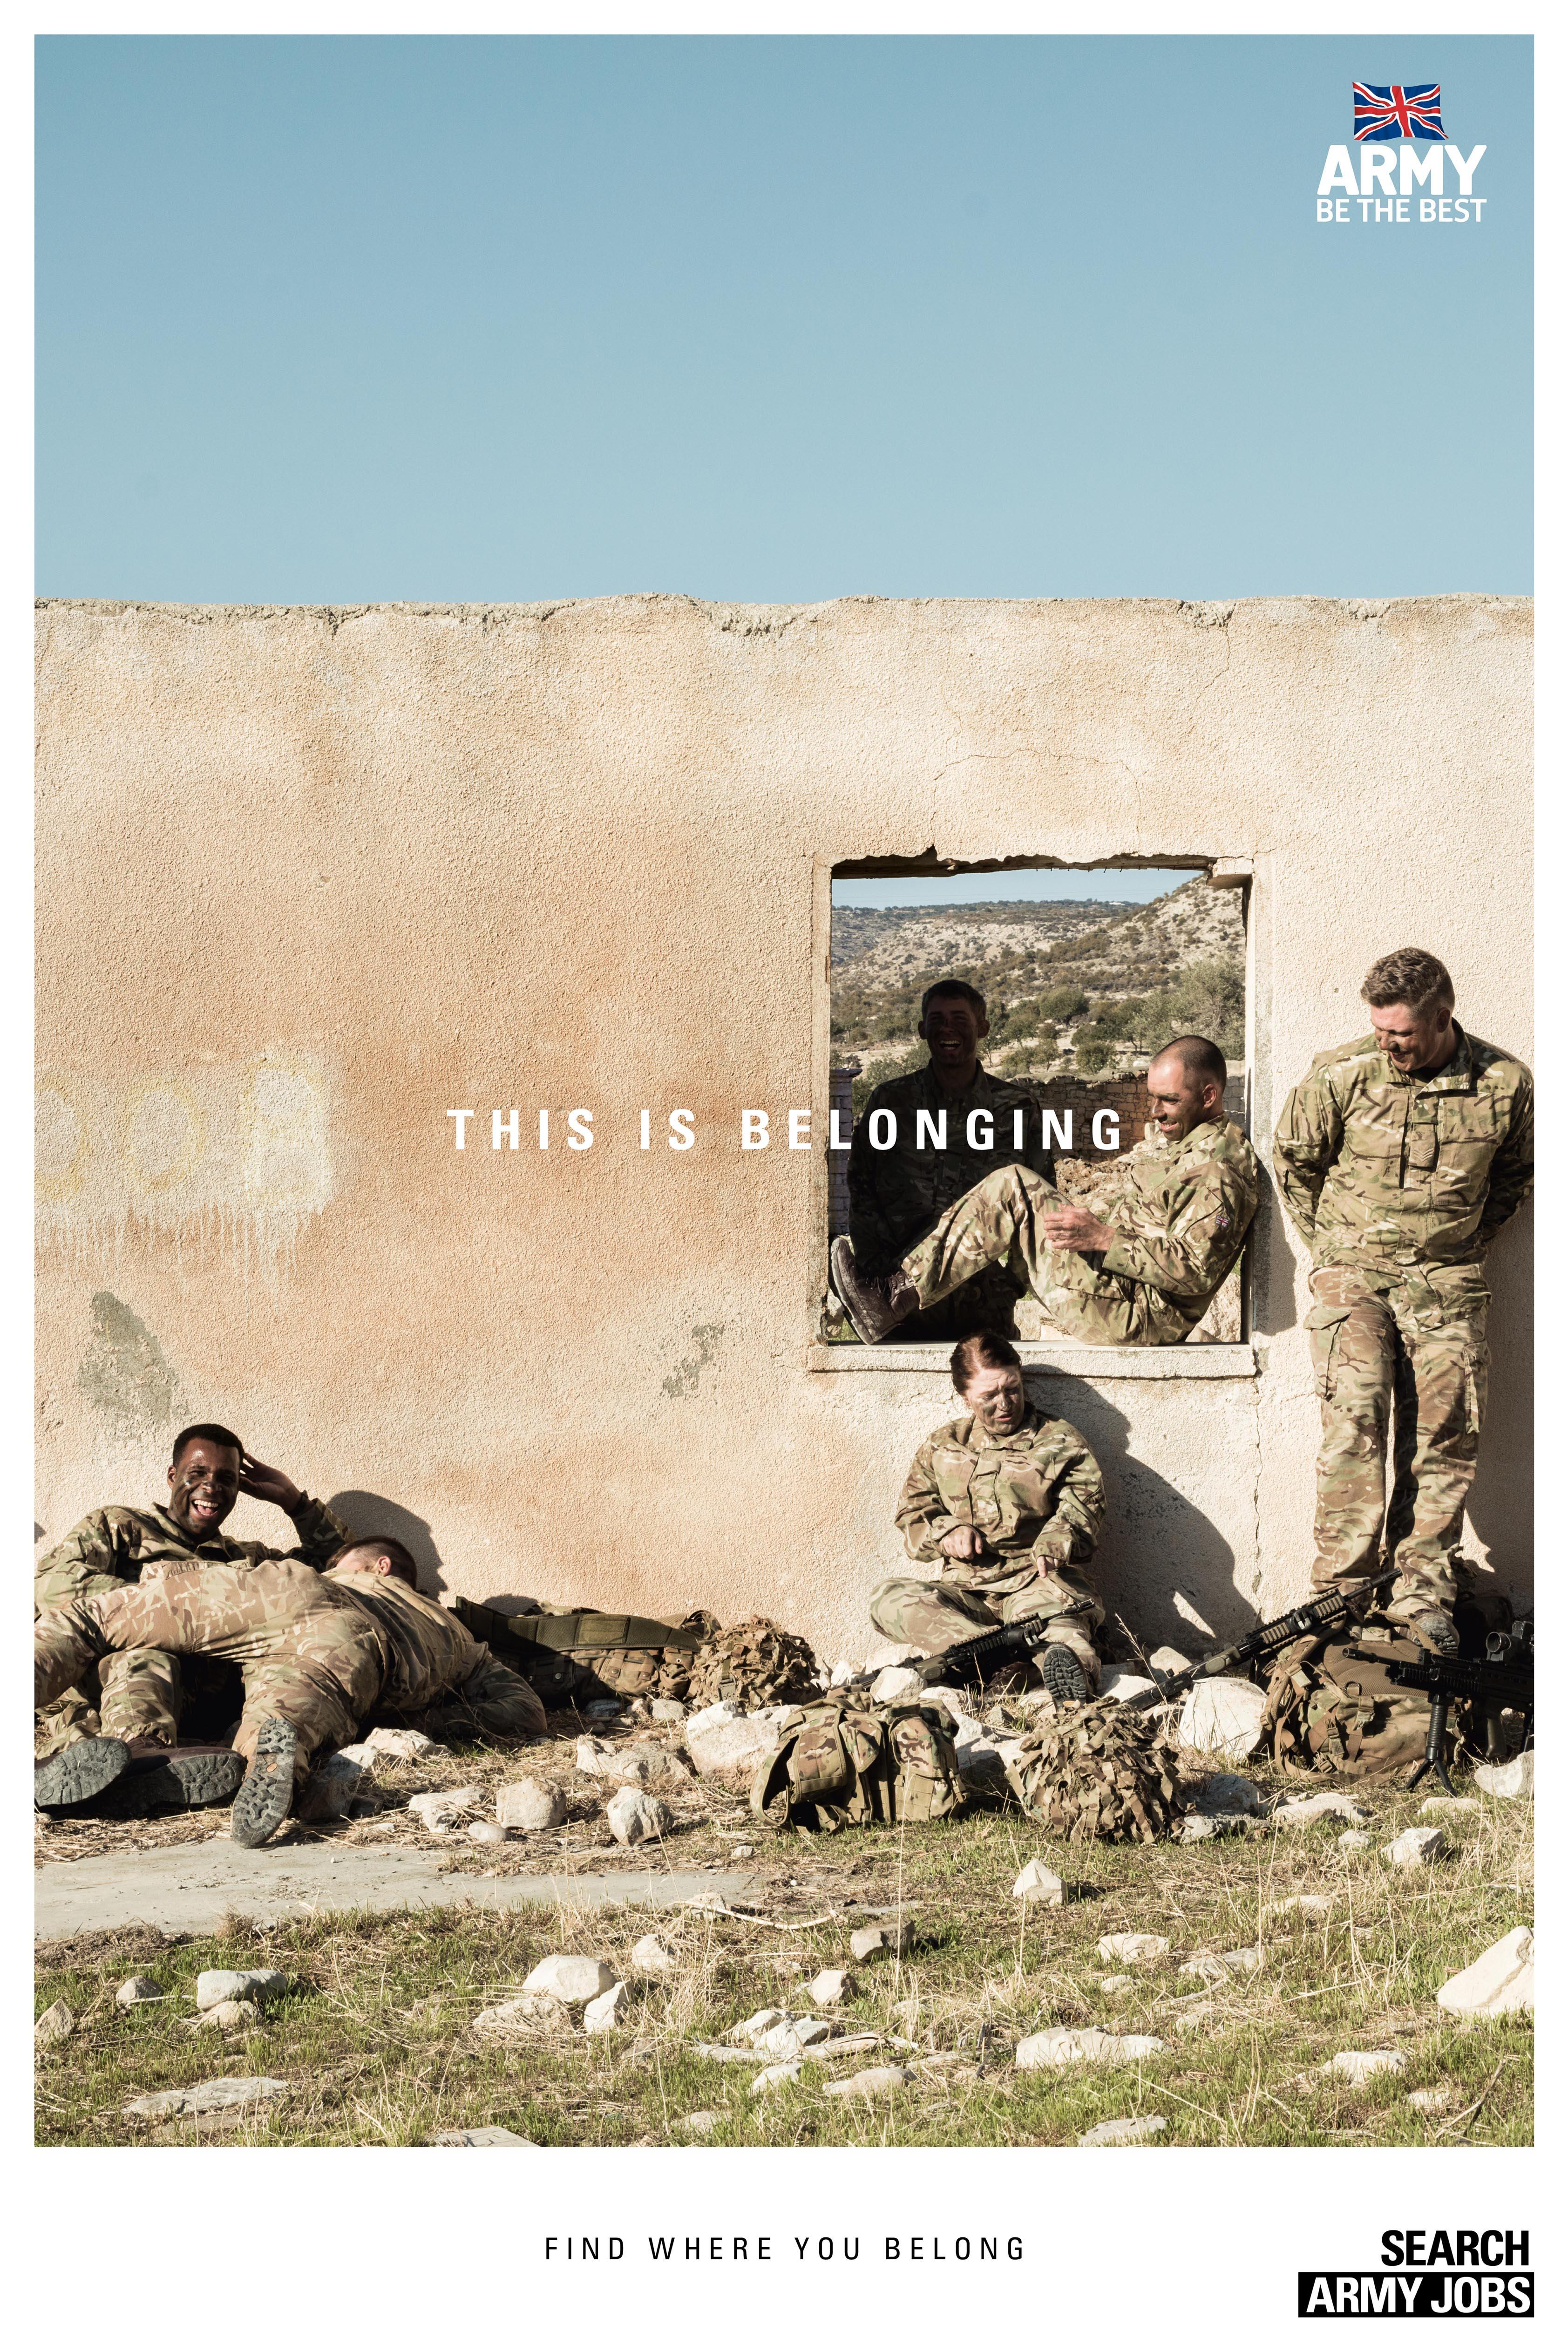 Army Outdoor Ad - This is belonging, 5